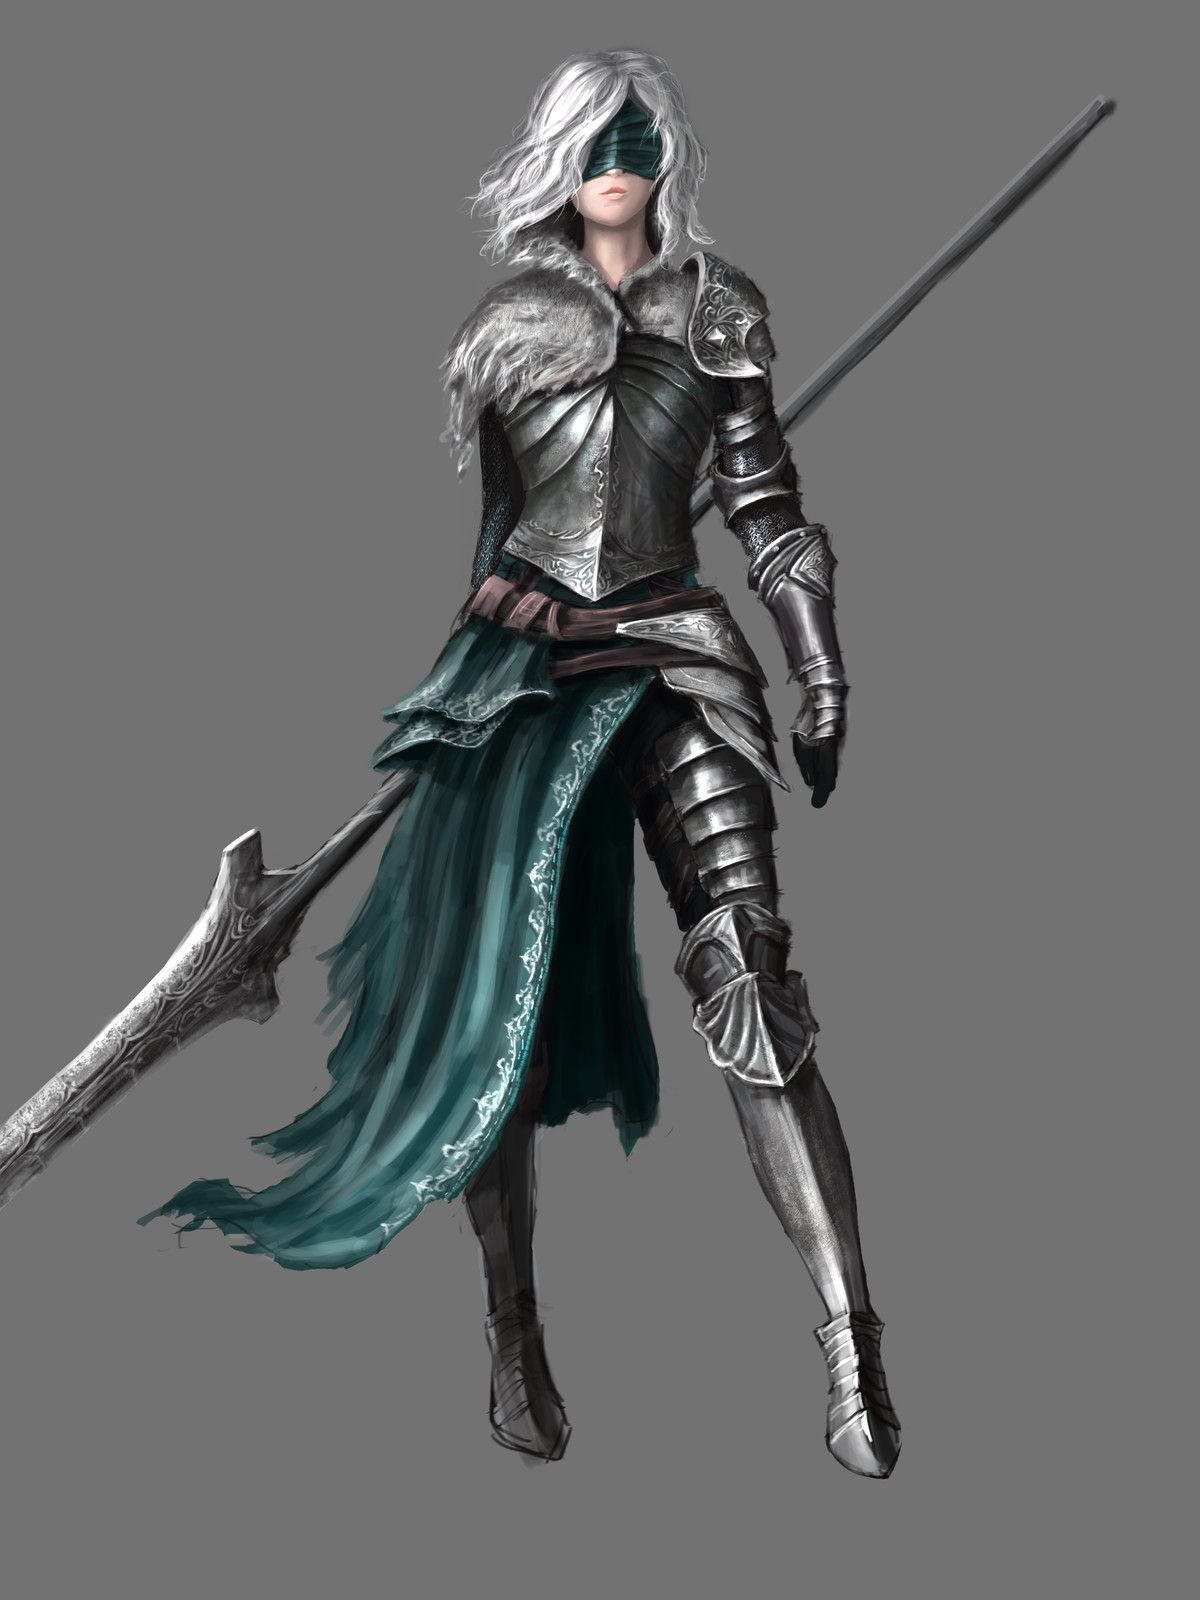 Medieval Fantasy Characters Concept Art